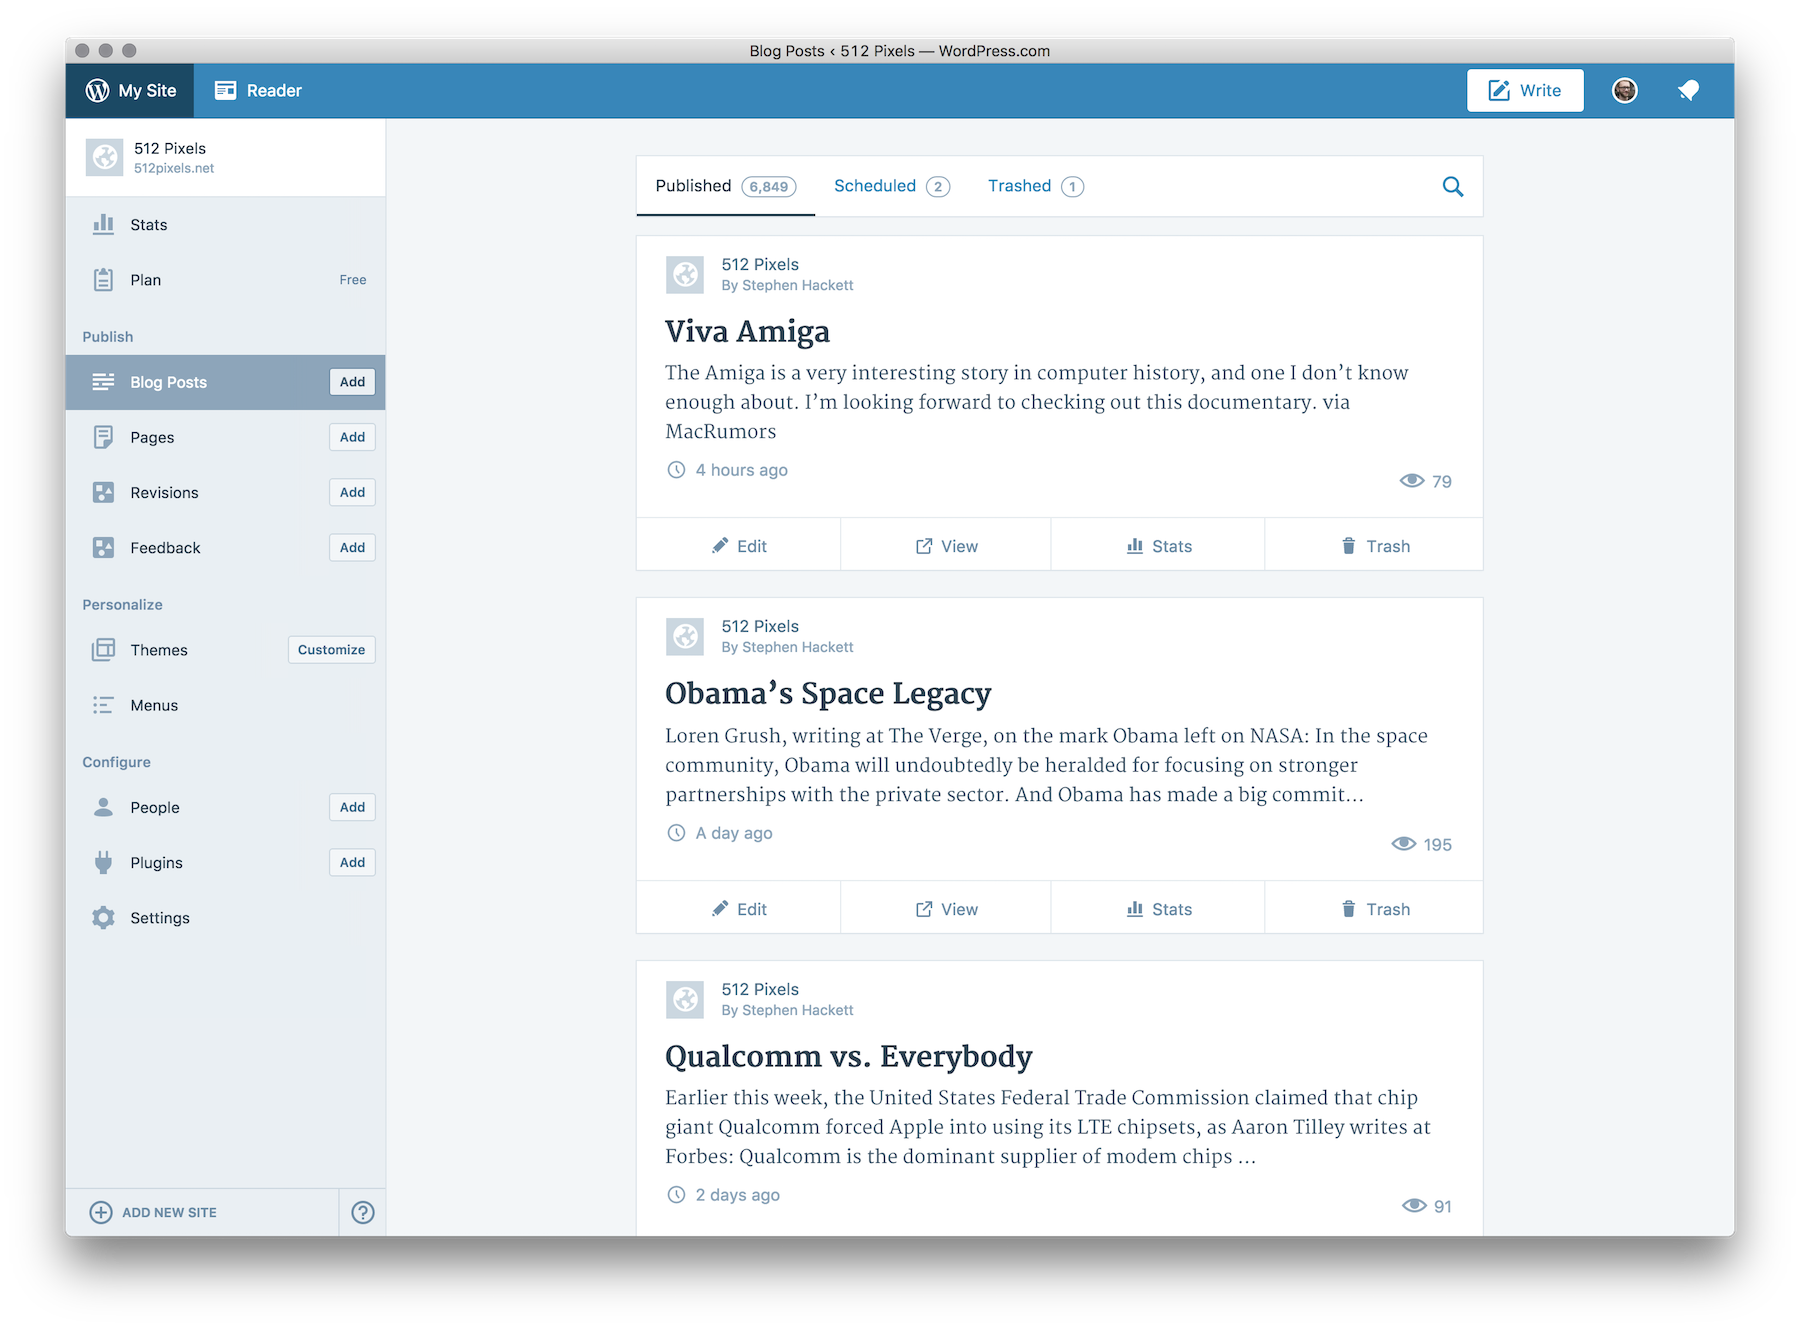 WordPress for Mac